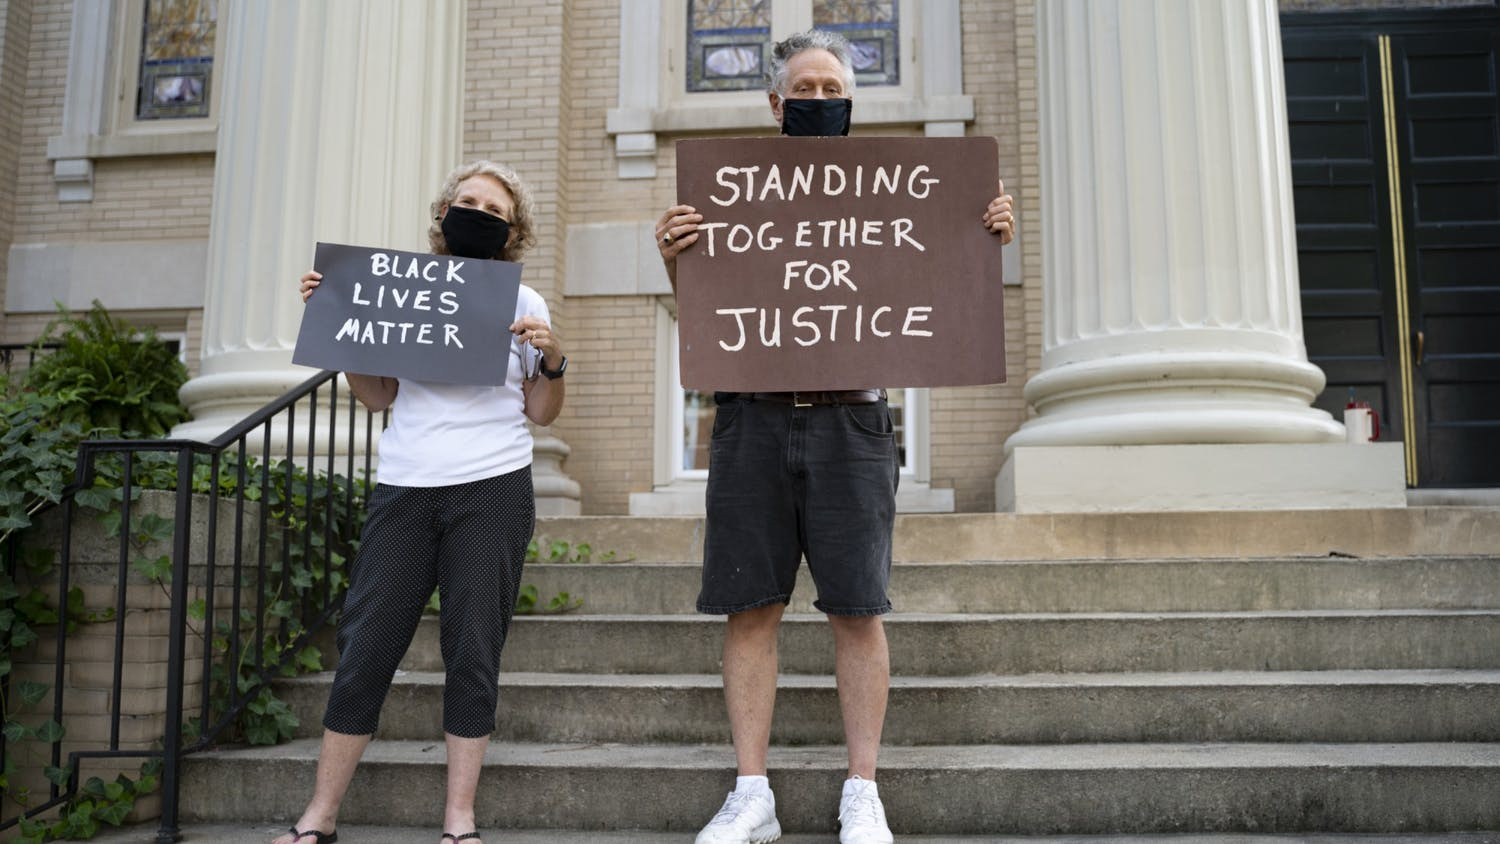 Protestors on the steps of University Baptist Church hold signs in support for the Black Lives Matter movement on Friday, Aug. 28, 2020, as well as every Friday since July.